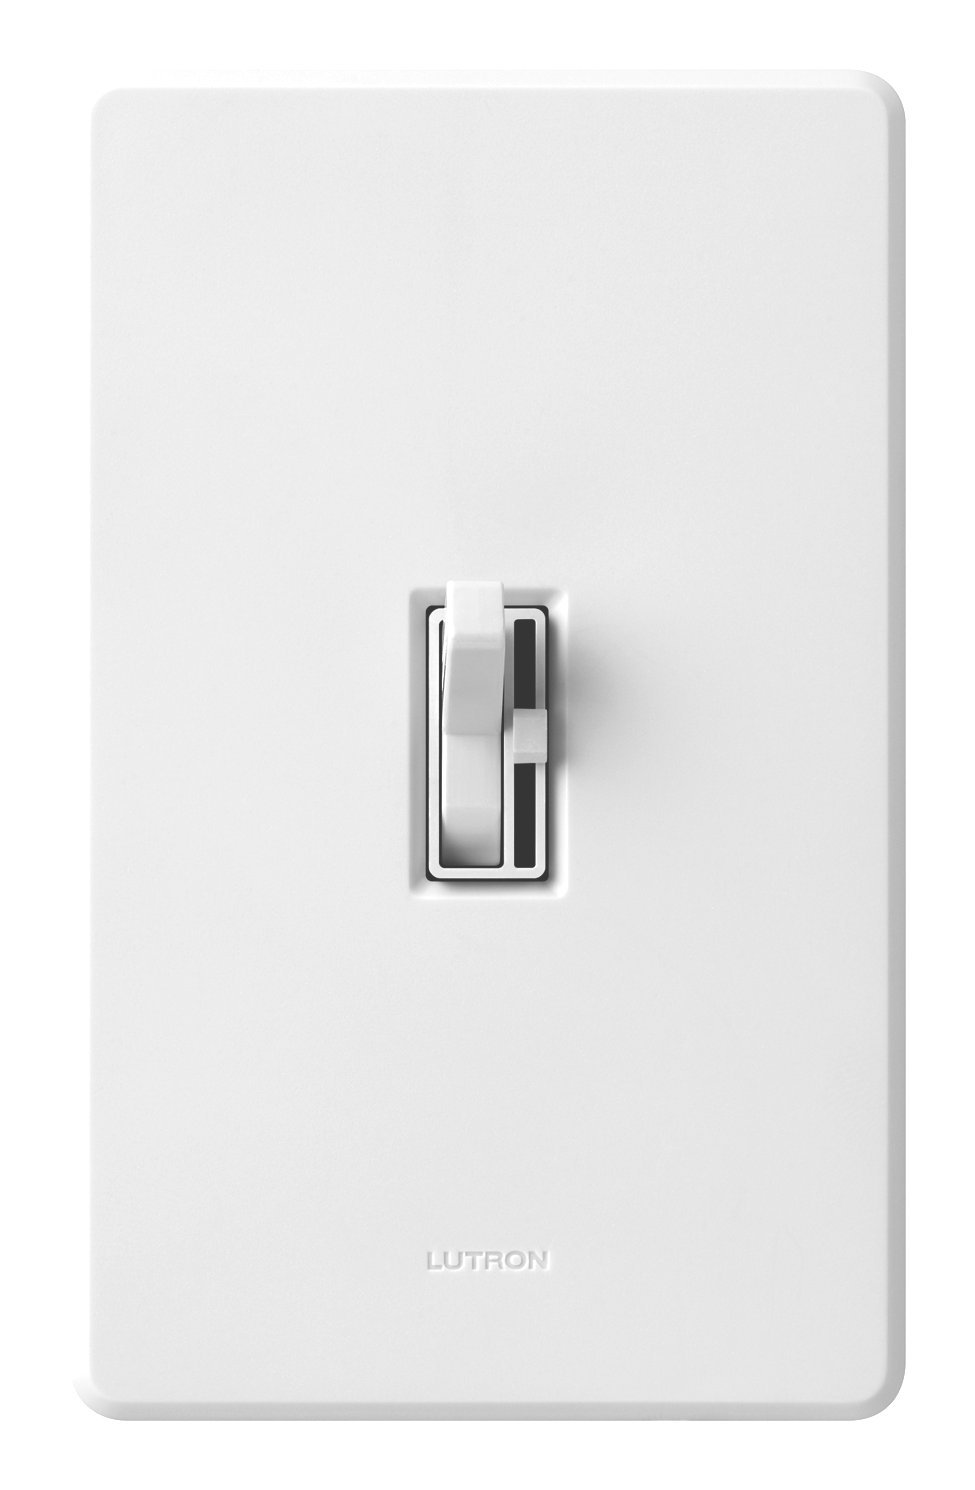 Lutron TG-103PH-WH Toggler 1000W 3-Way Preset Dimmer White